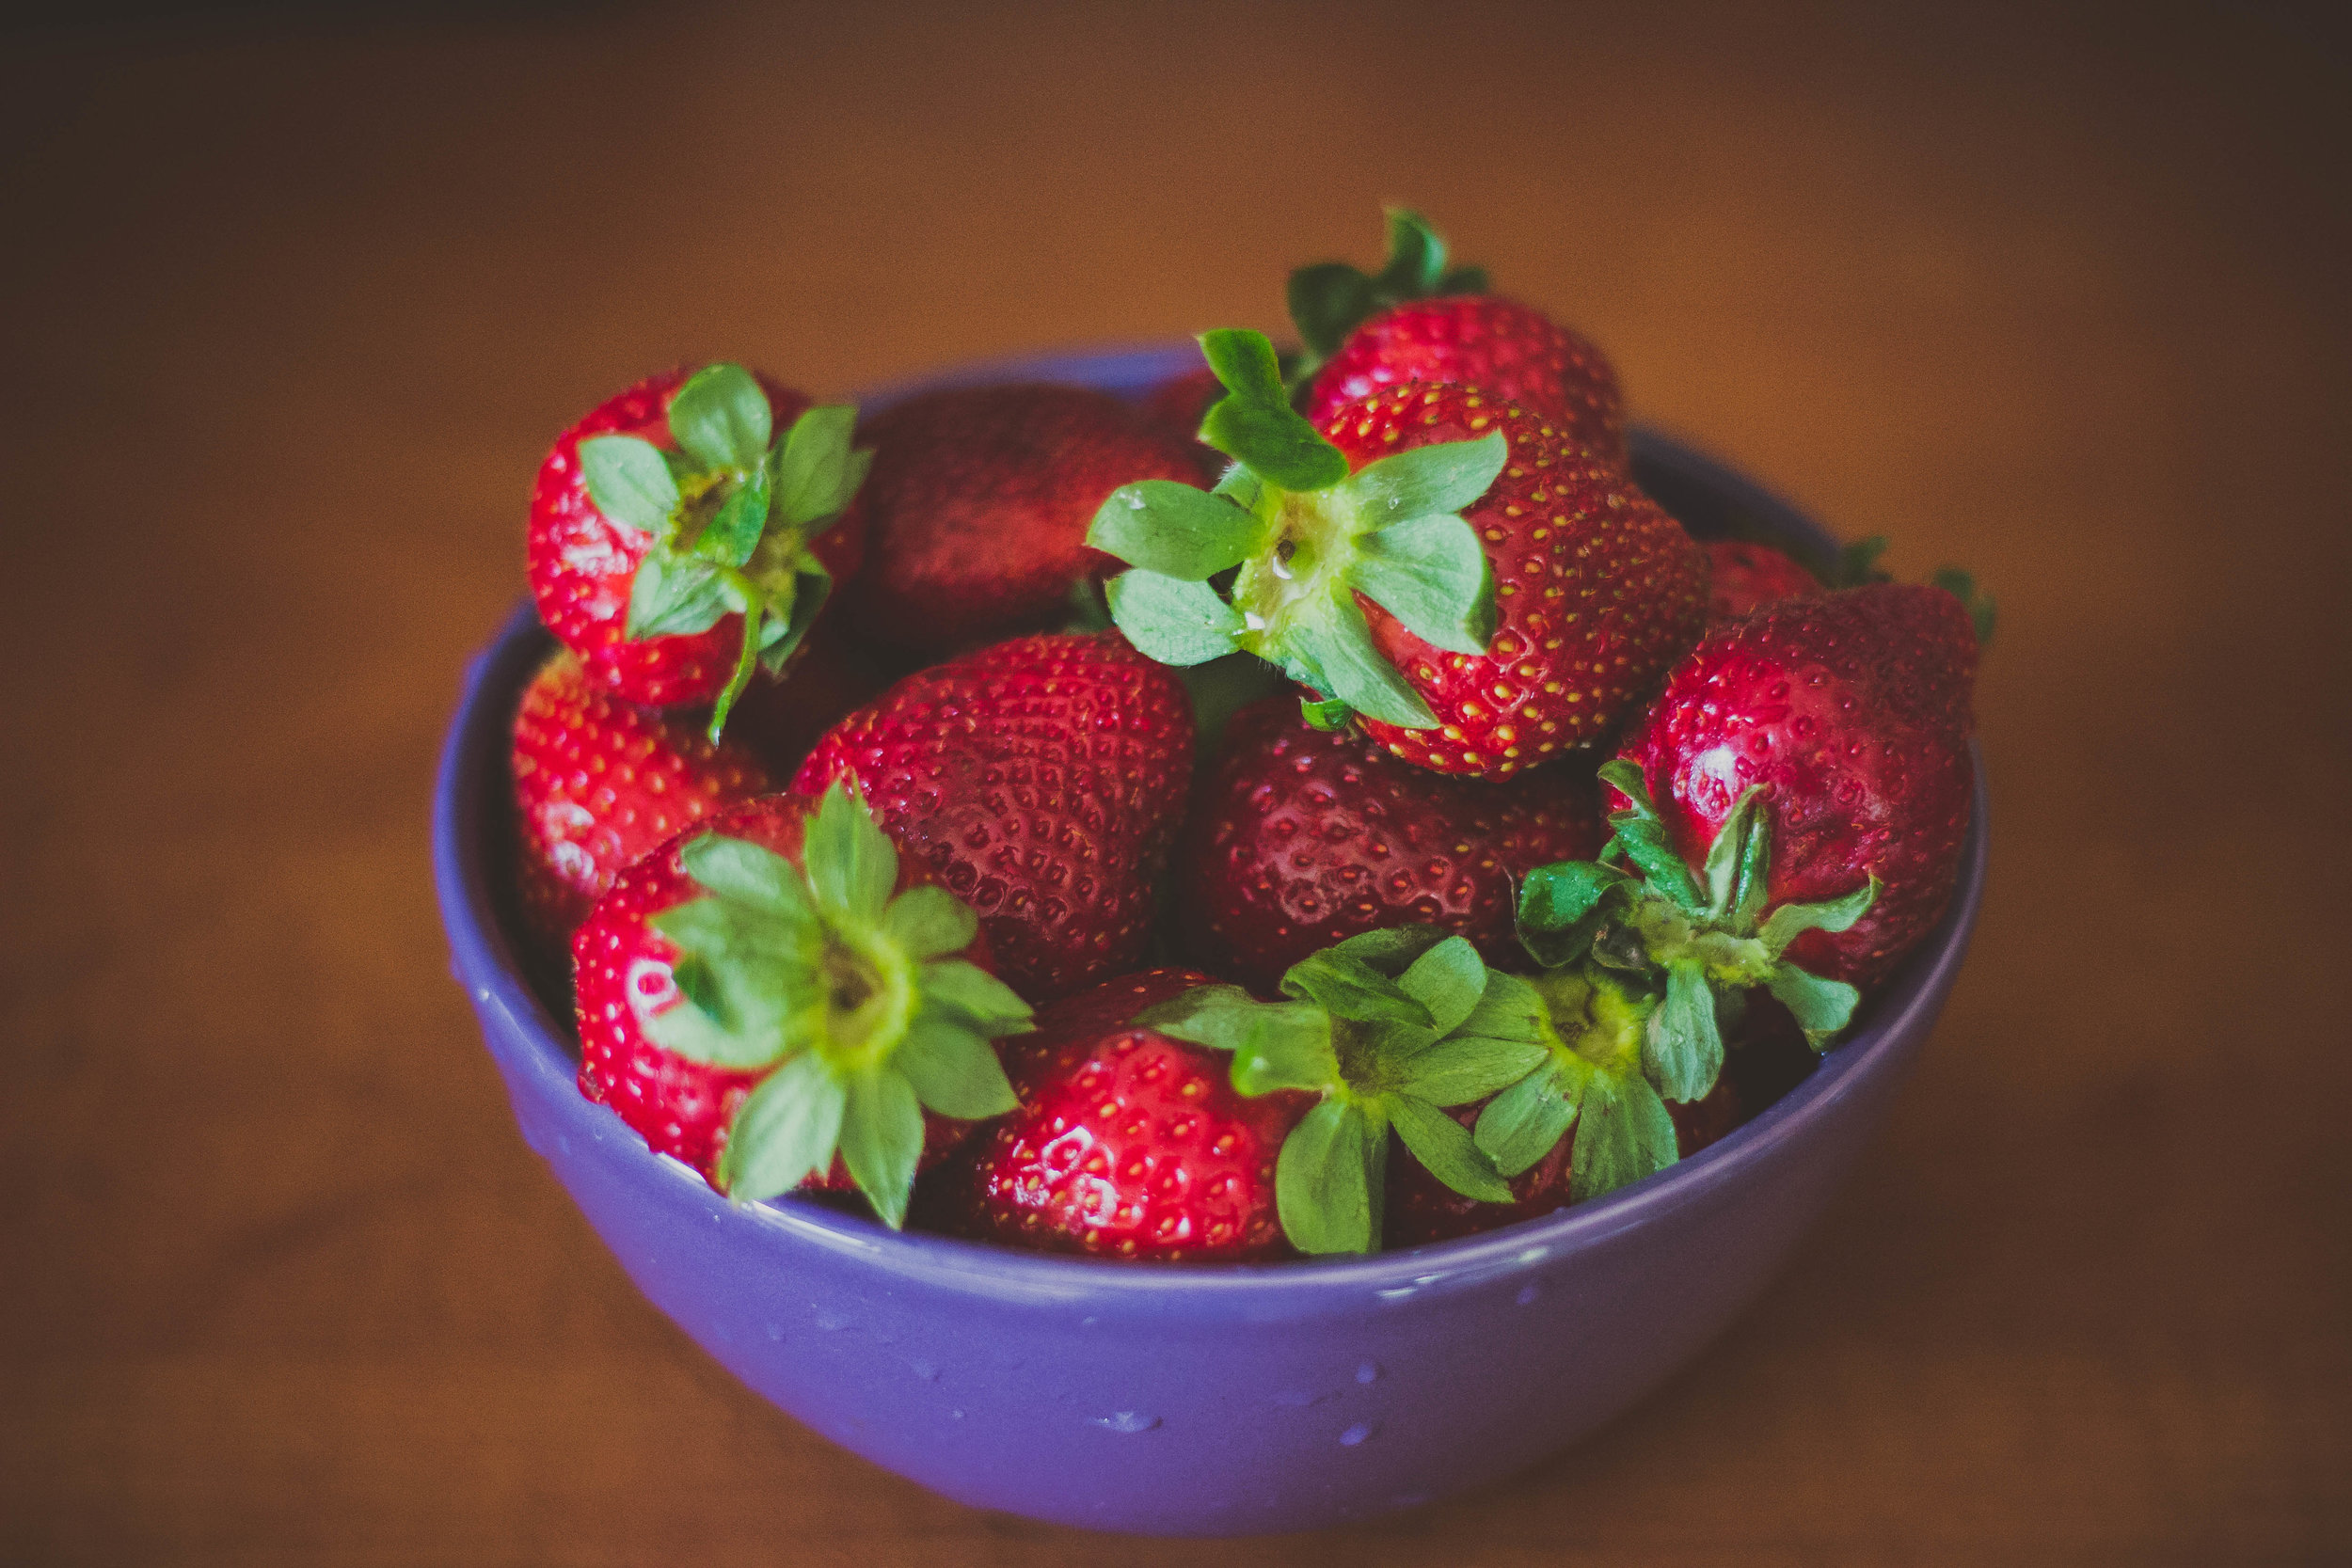 strawberries2.jpg